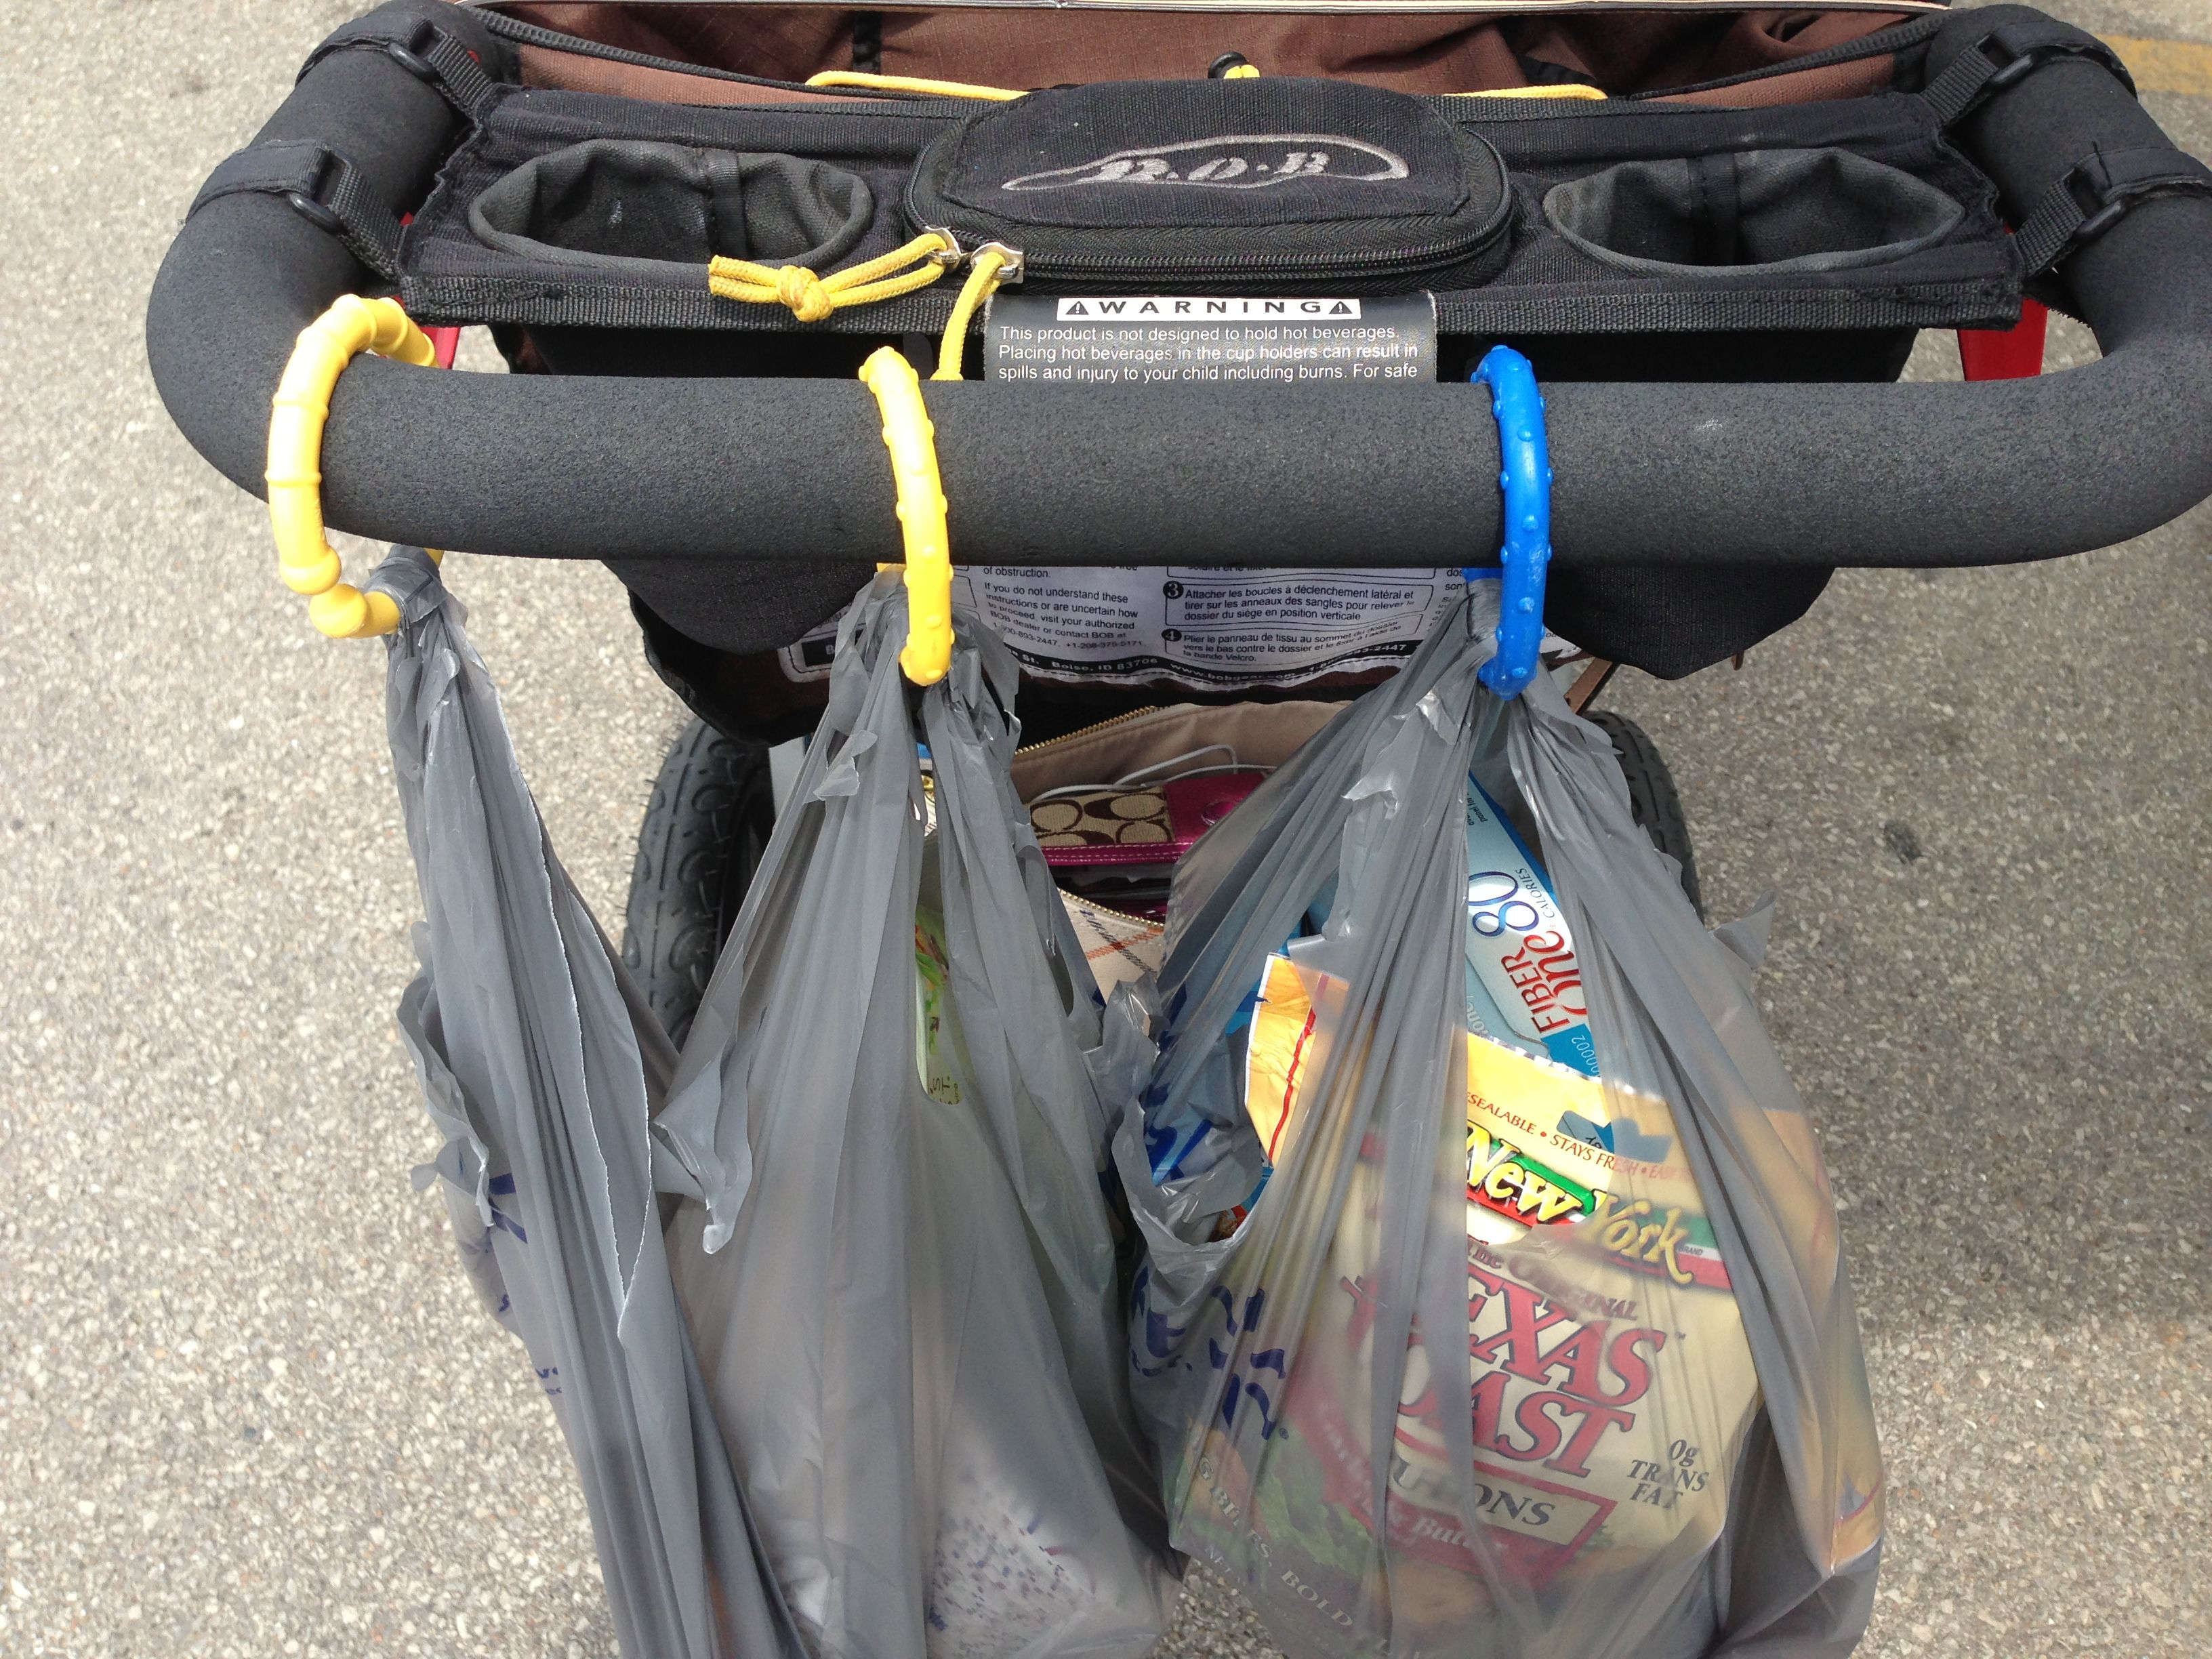 Bob Stroller Bag Use Baby Teething Rings As Stroller Bag Holders These Also